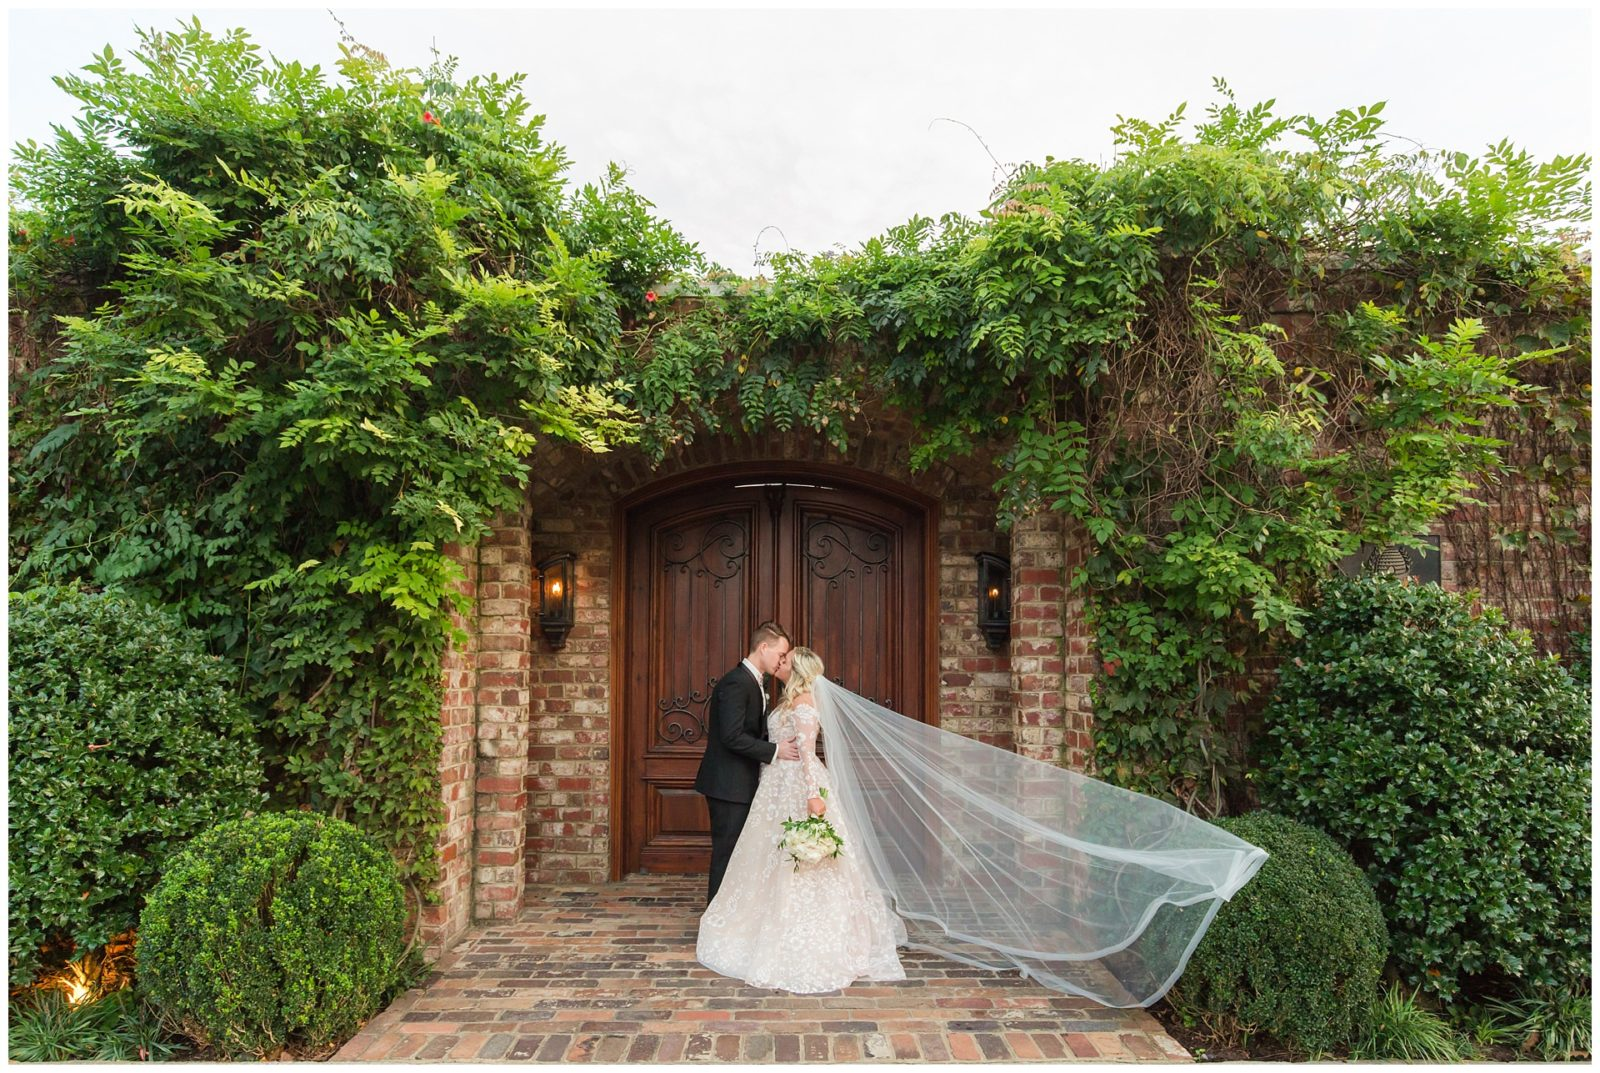 small wedding venue garden gate with newly weds kissing